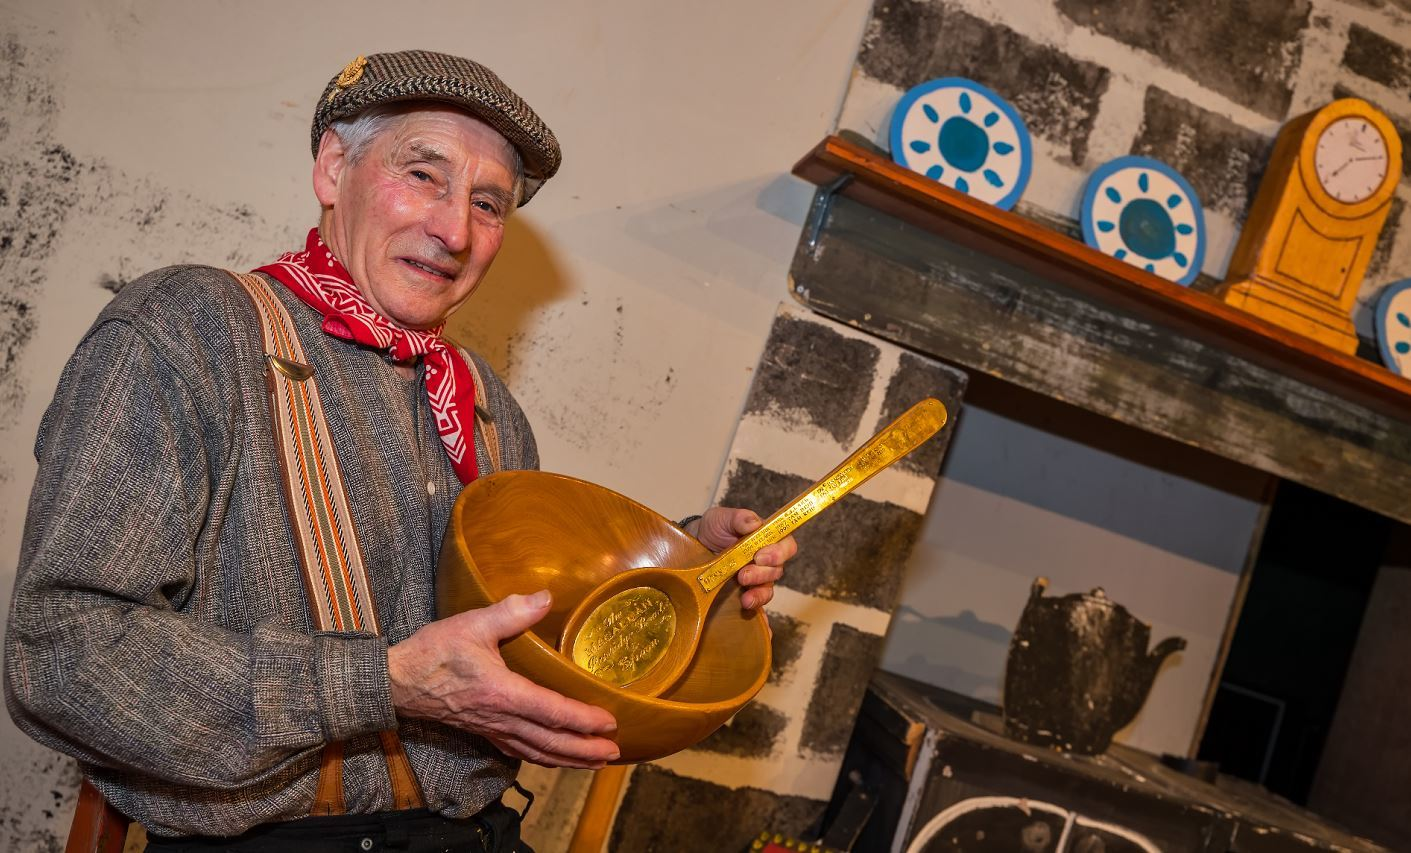 Hector Riddell is only the third person to win the Bothy Ballads contest five times.